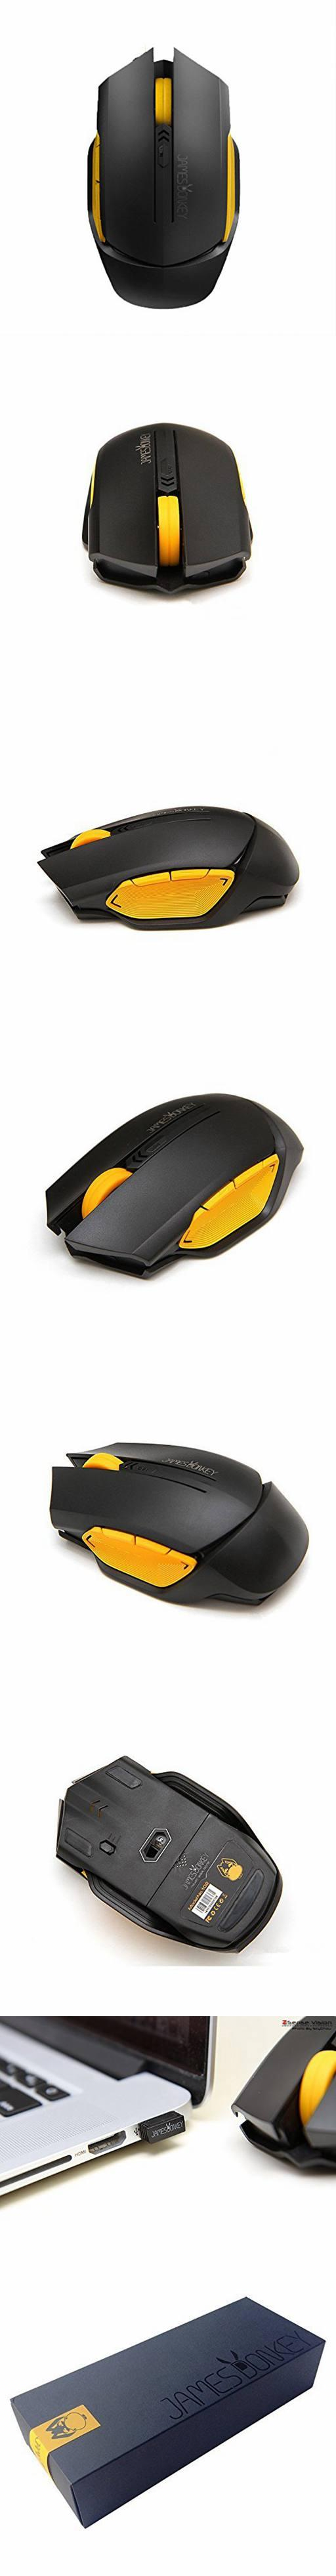 James Donkey 102 Wireless Gaming Mouse Black Daftar Update Harga 1600dpi For Gamer With 6 Button